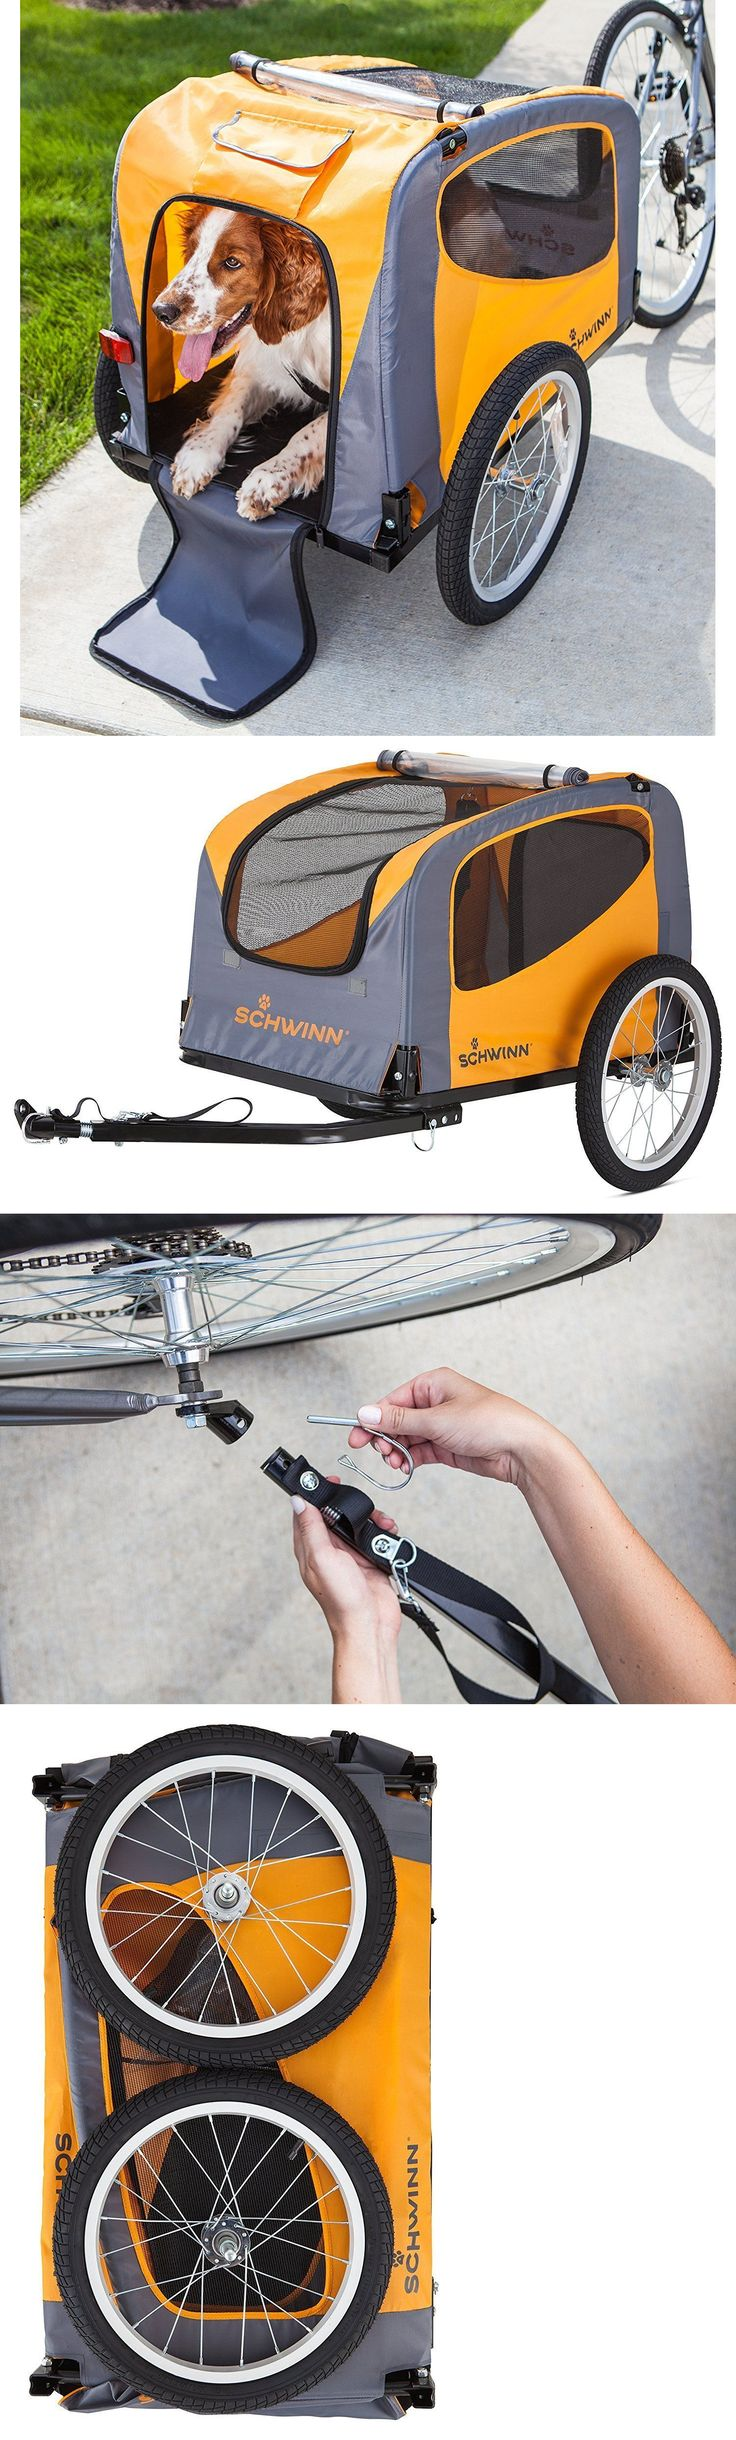 Bike Baskets and Trailers 46453: Orange 1 Pet Bicycle Trailer 16In Tire Weather Screen Cover Folding Dog Carrier -> BUY IT NOW ONLY: $155.37 on eBay!